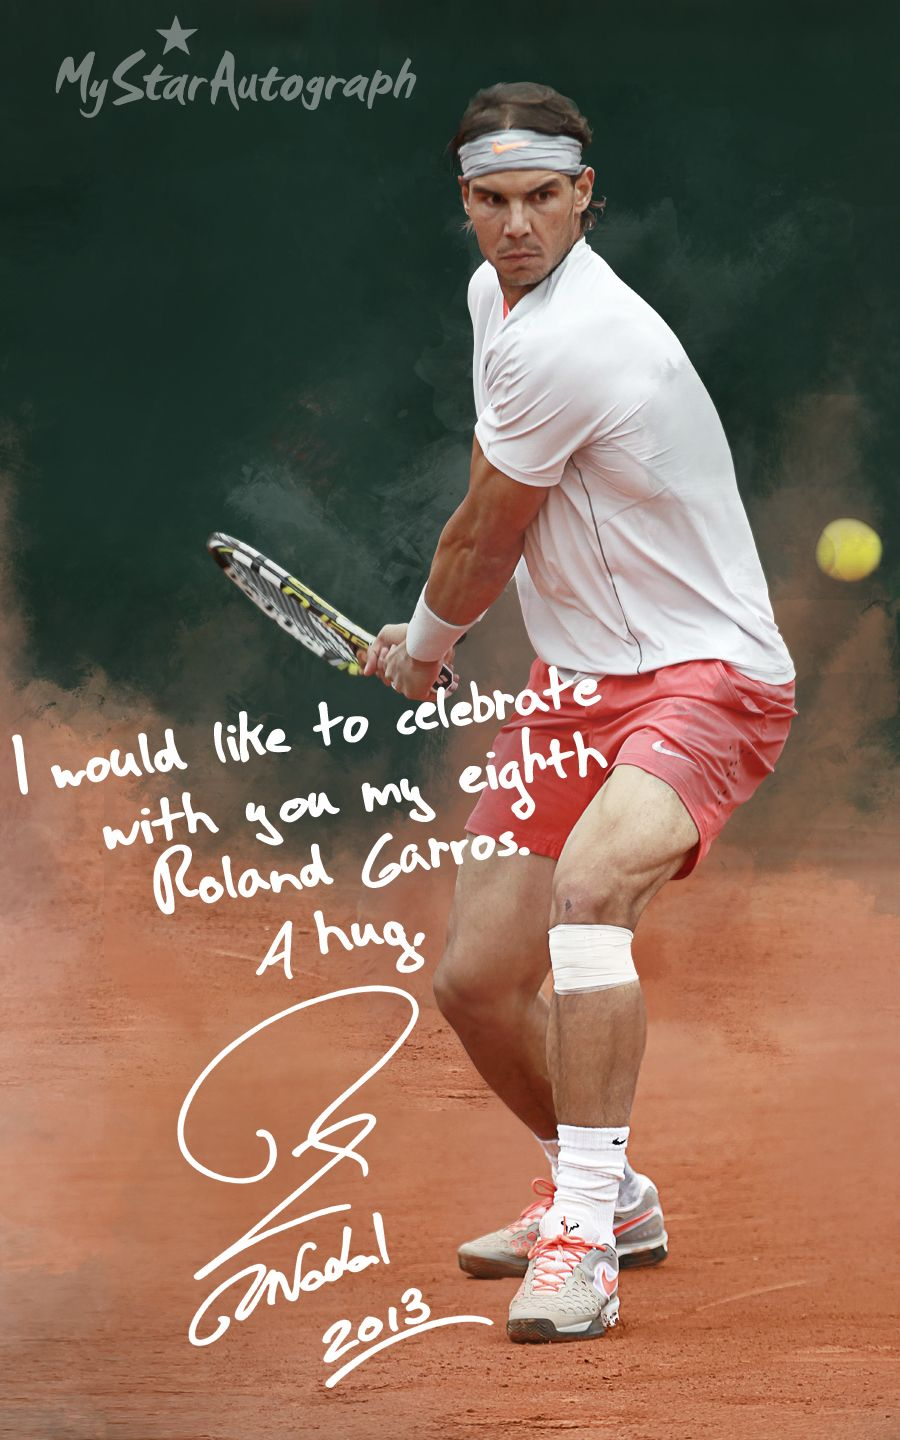 Thank You My Star Autograph And Thank You Rafa For Sharing The Link For This Download On Your Fb Nadal Tennis Rafa Nadal Tennis Legends